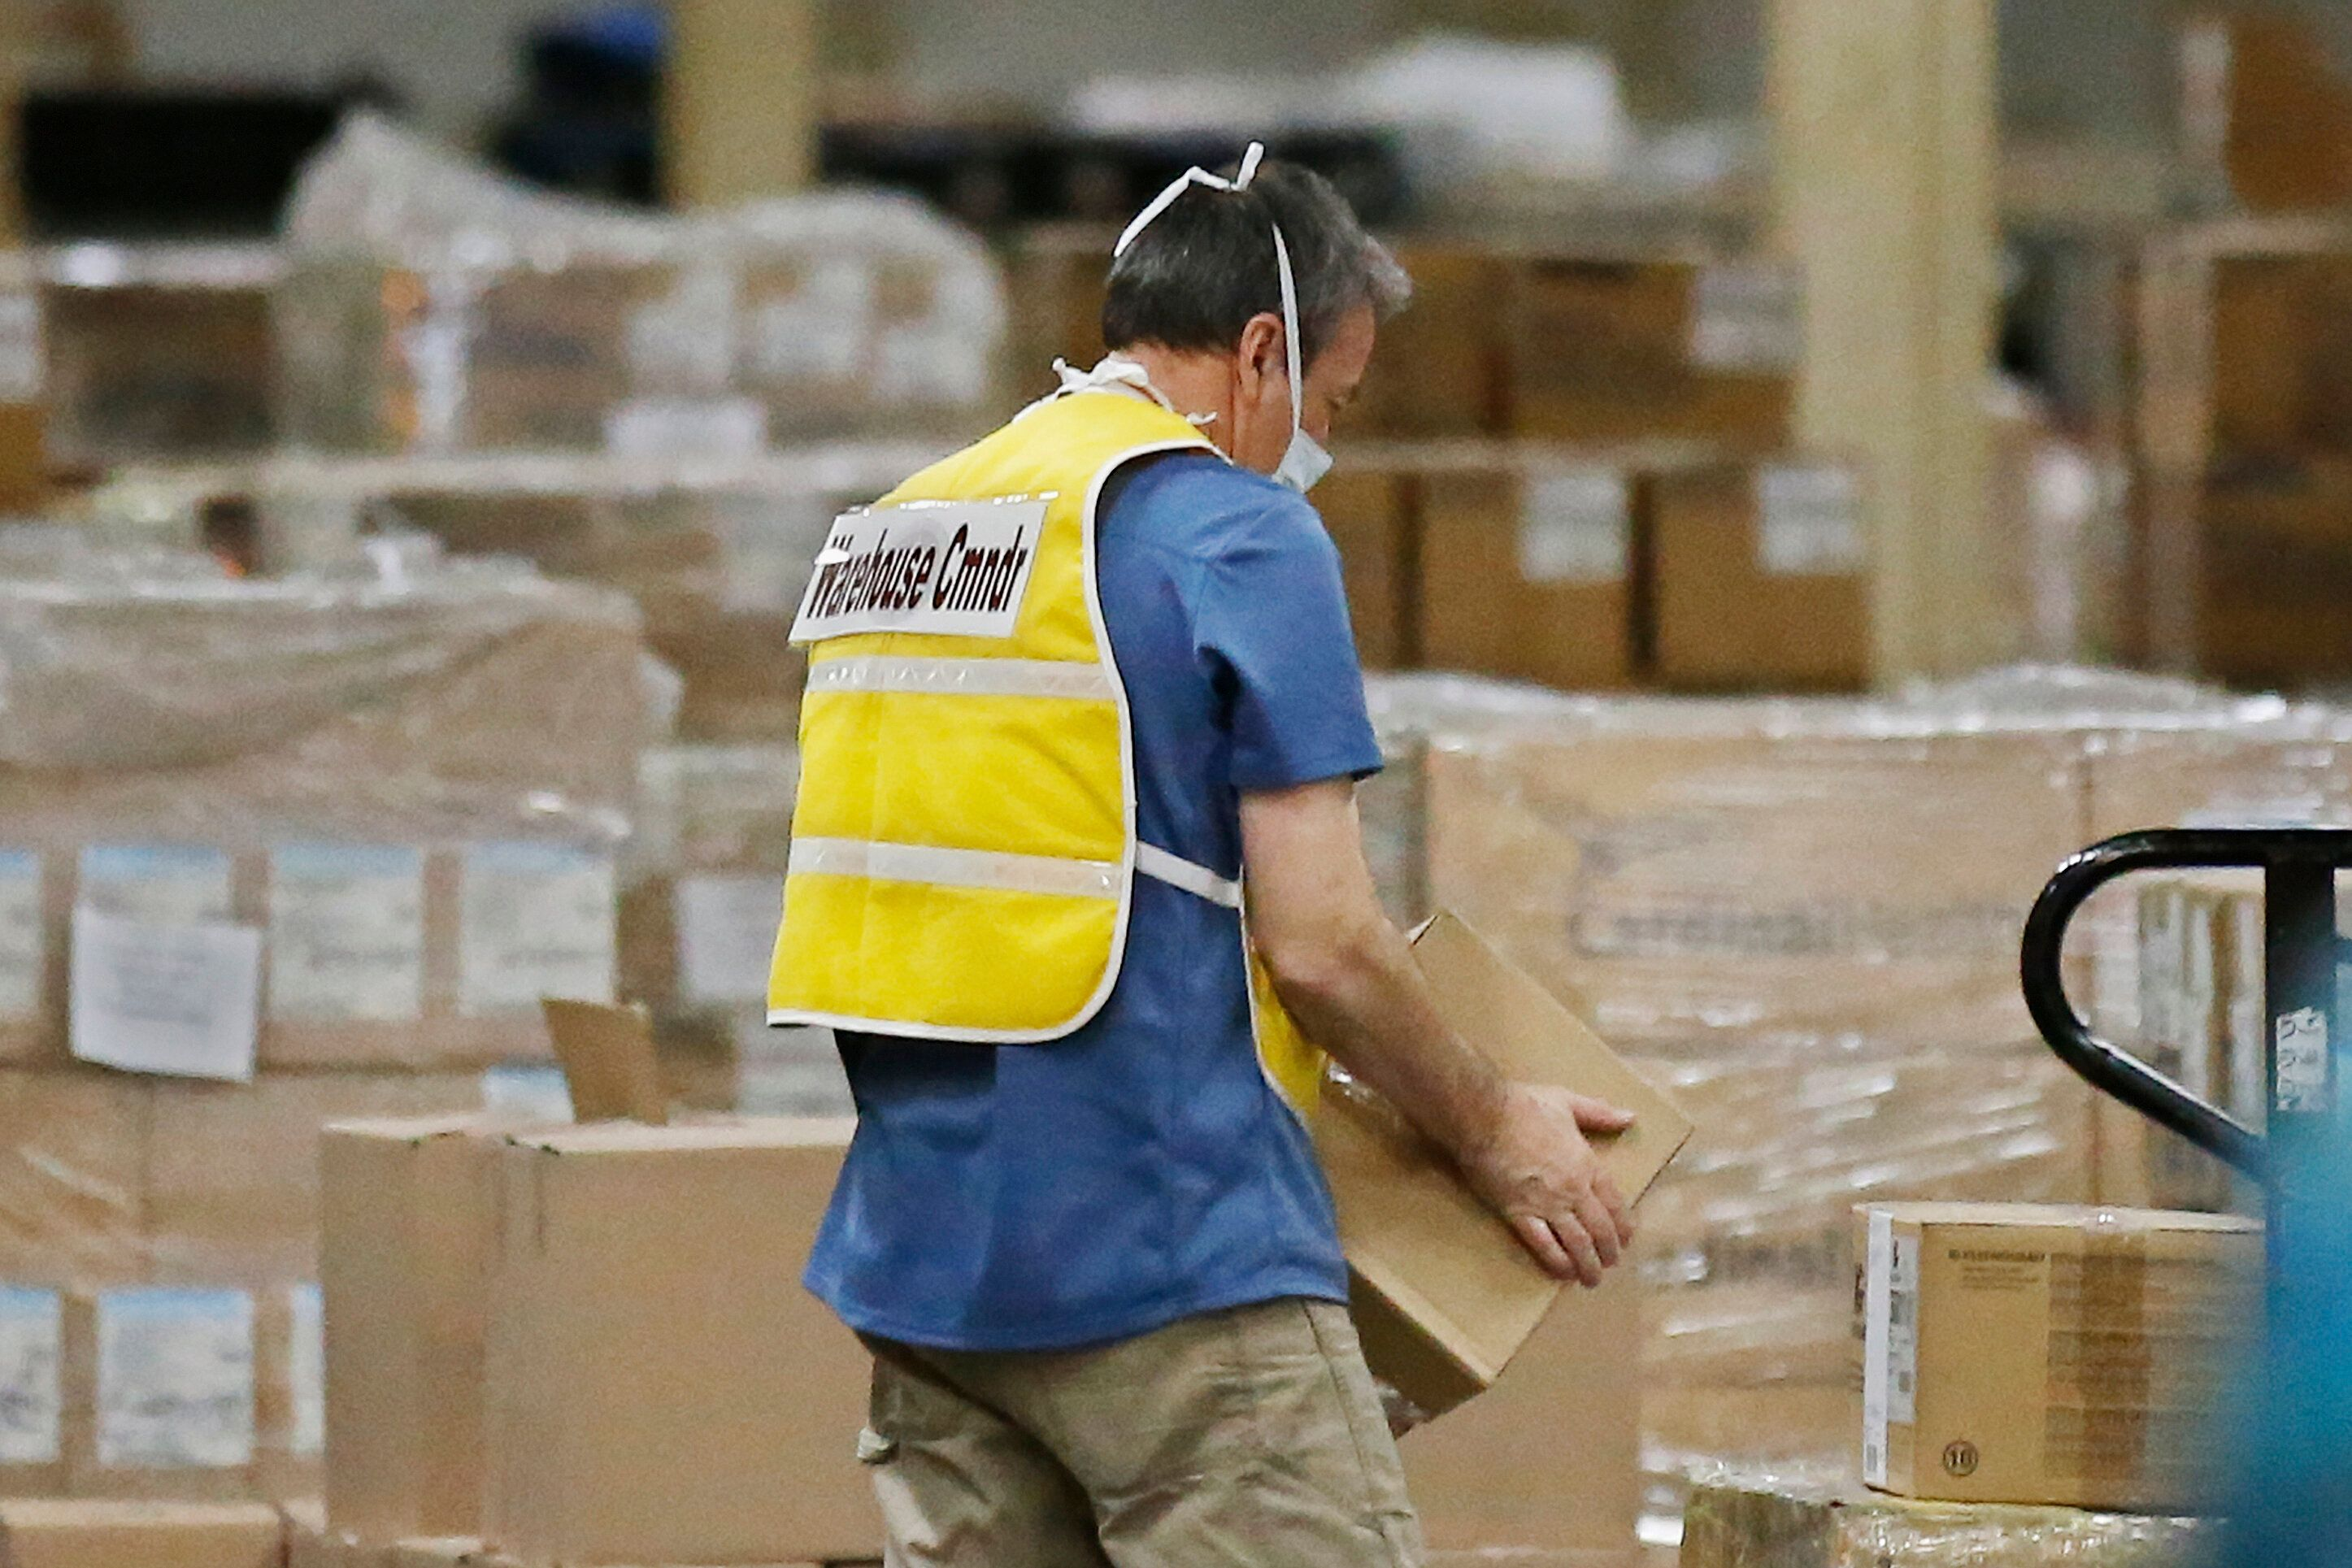 Oklahoma's Strategic National Stockpile warehouse contains 4 million pairs of gloves, 120,000 gowns, 173,000 face shields and